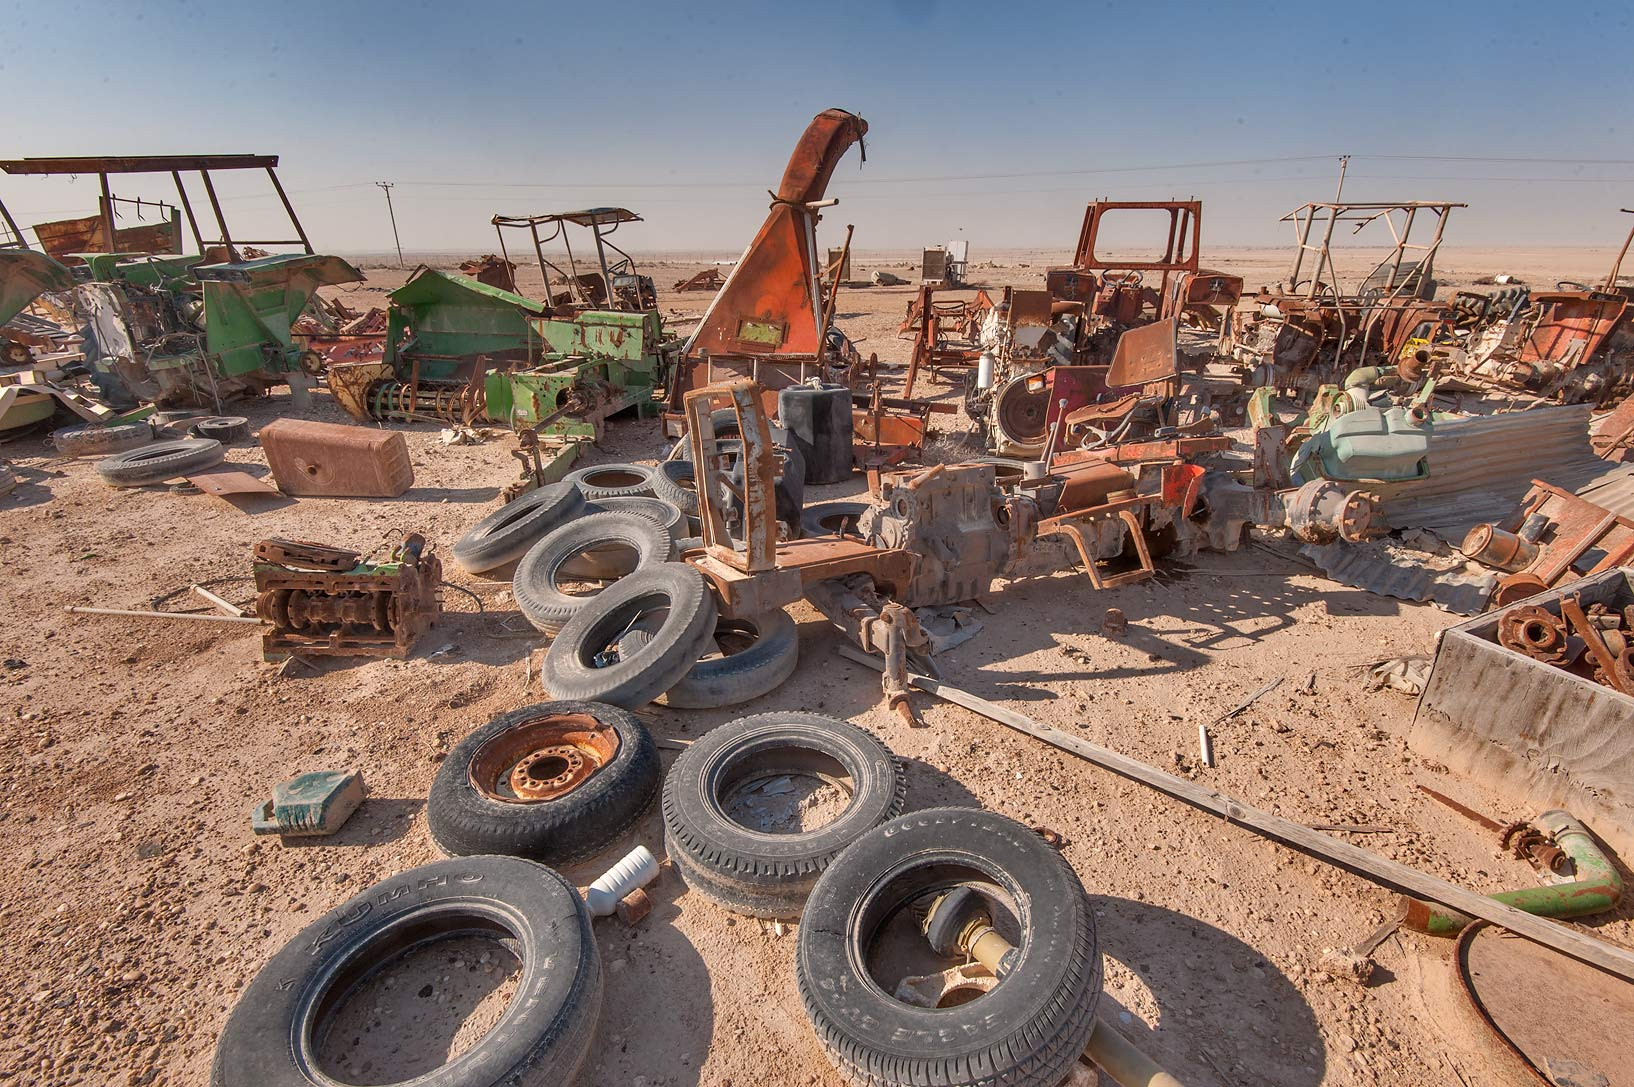 Spare tires for agricultural machinery on Green...in Irkhaya (Irkaya) Farms. Qatar